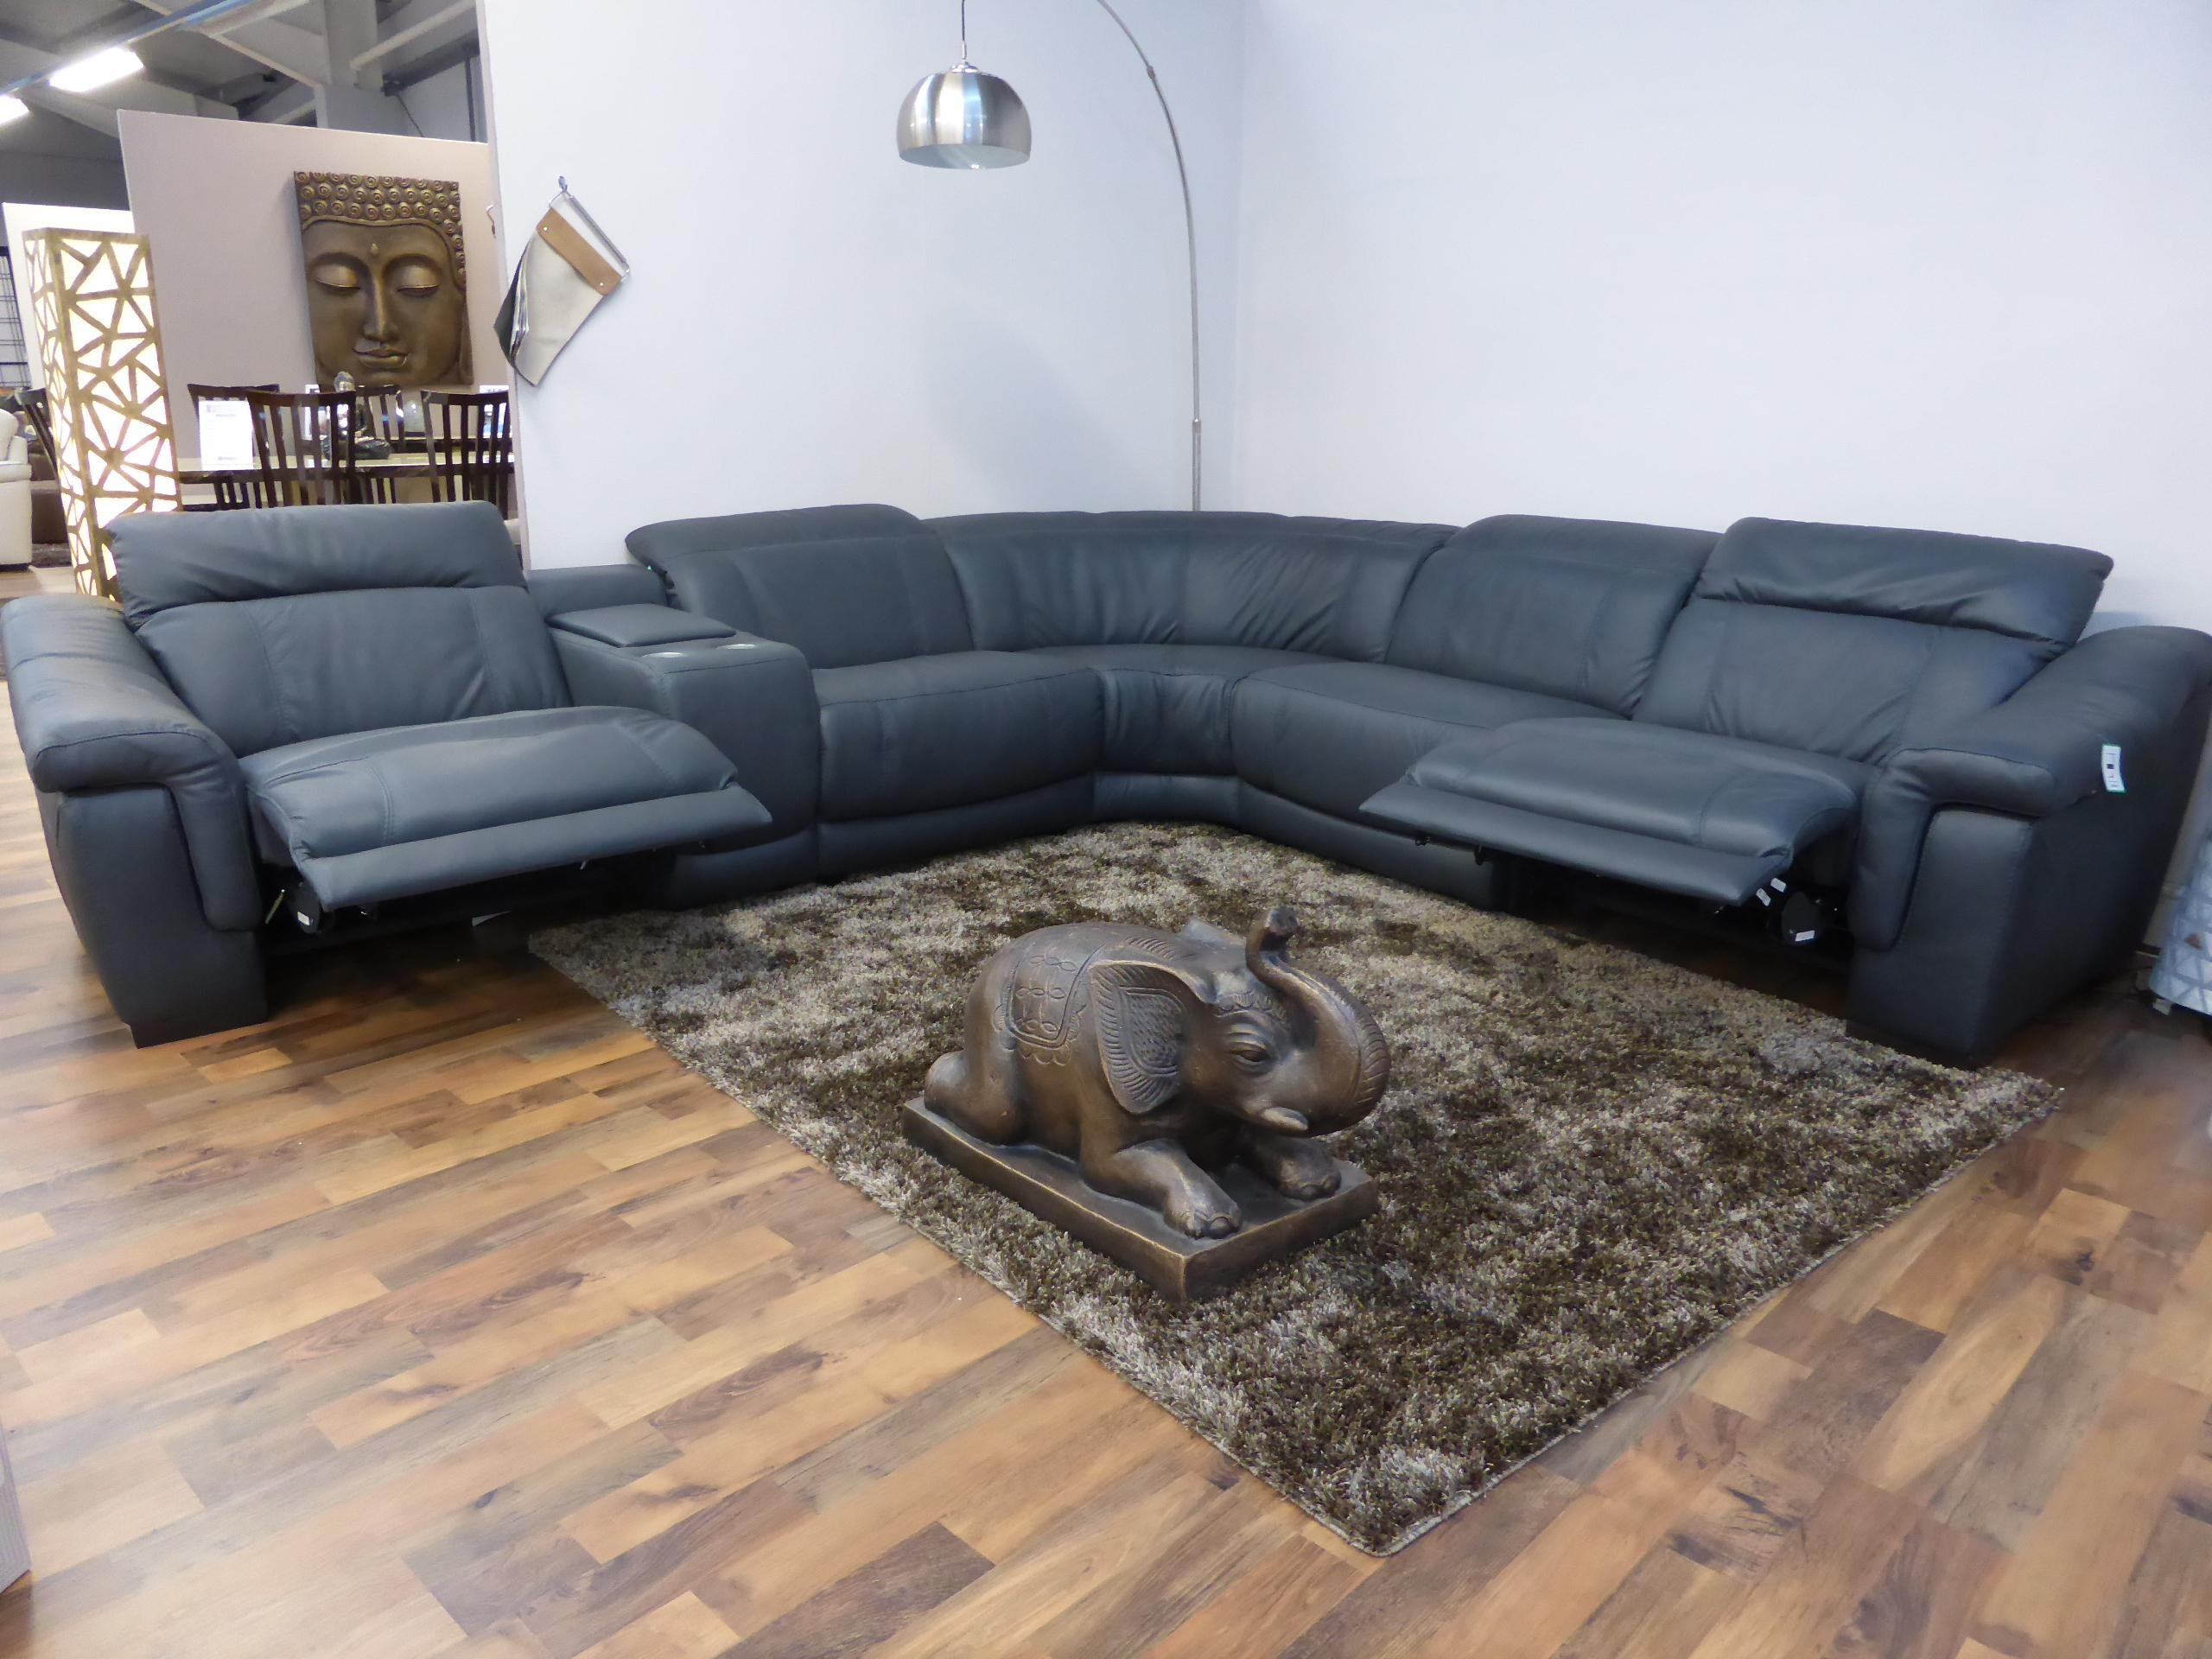 Chinaklsk Pertaining To Italian Recliner Sofas (Image 4 of 20)